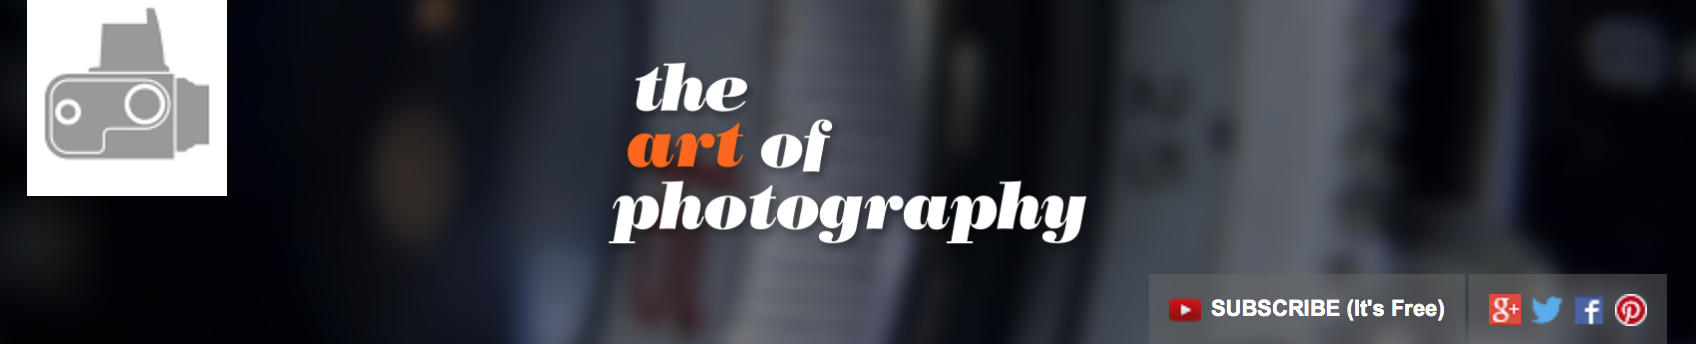 List of Most Popular Photography YouTube Channels art of photography